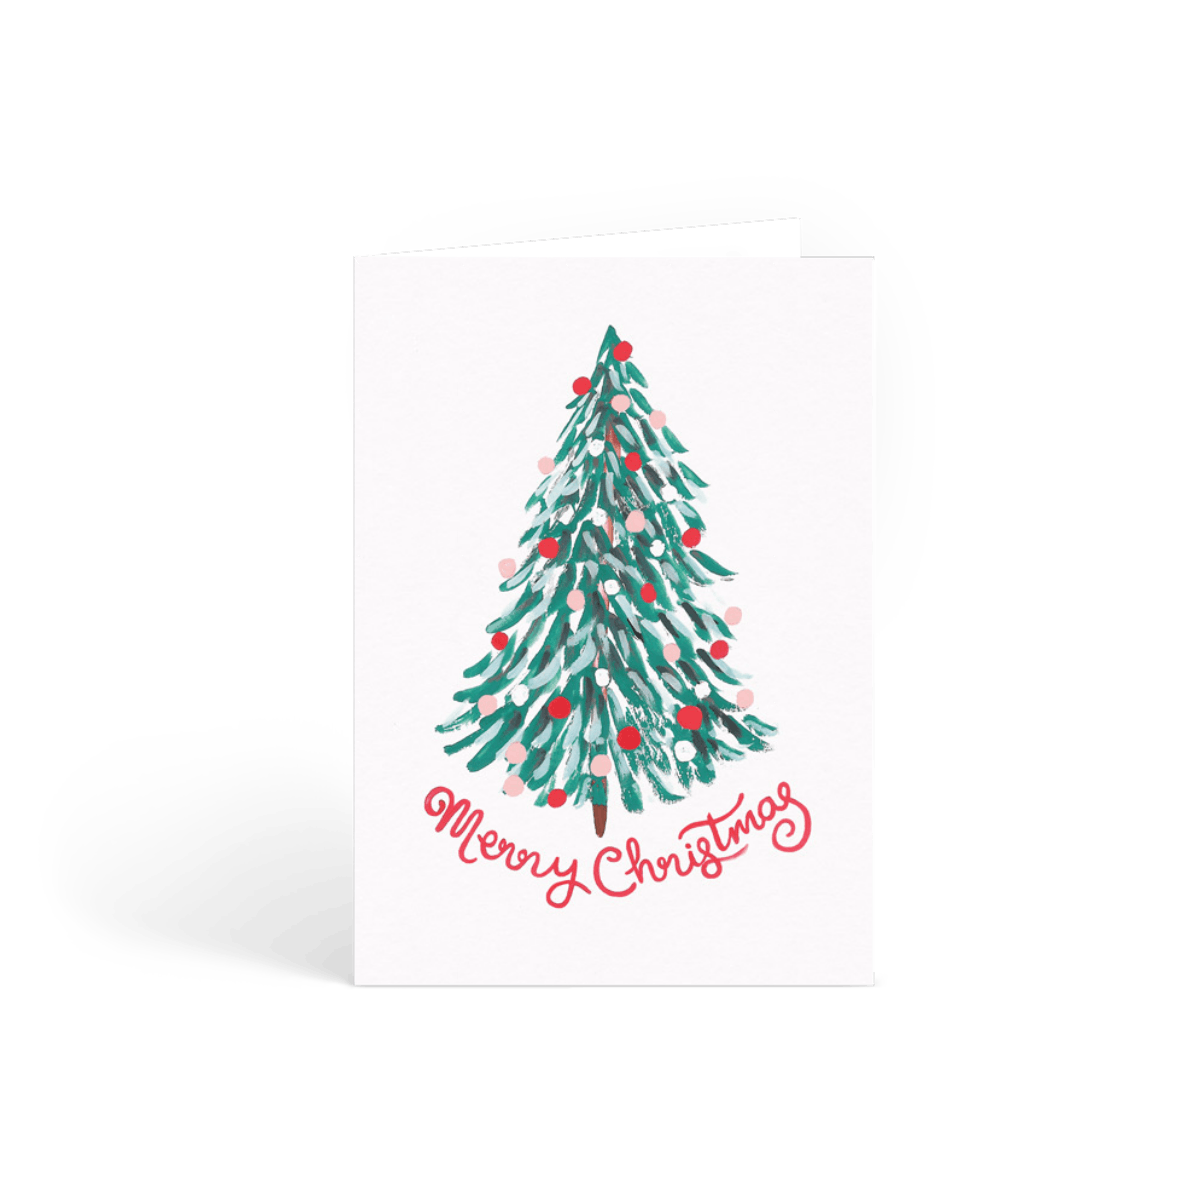 Https%3a%2f%2fwww.papier.com%2fproduct image%2f24769%2f2%2fmerry christmas tree 6185 front 1498581413.png?ixlib=rb 1.1